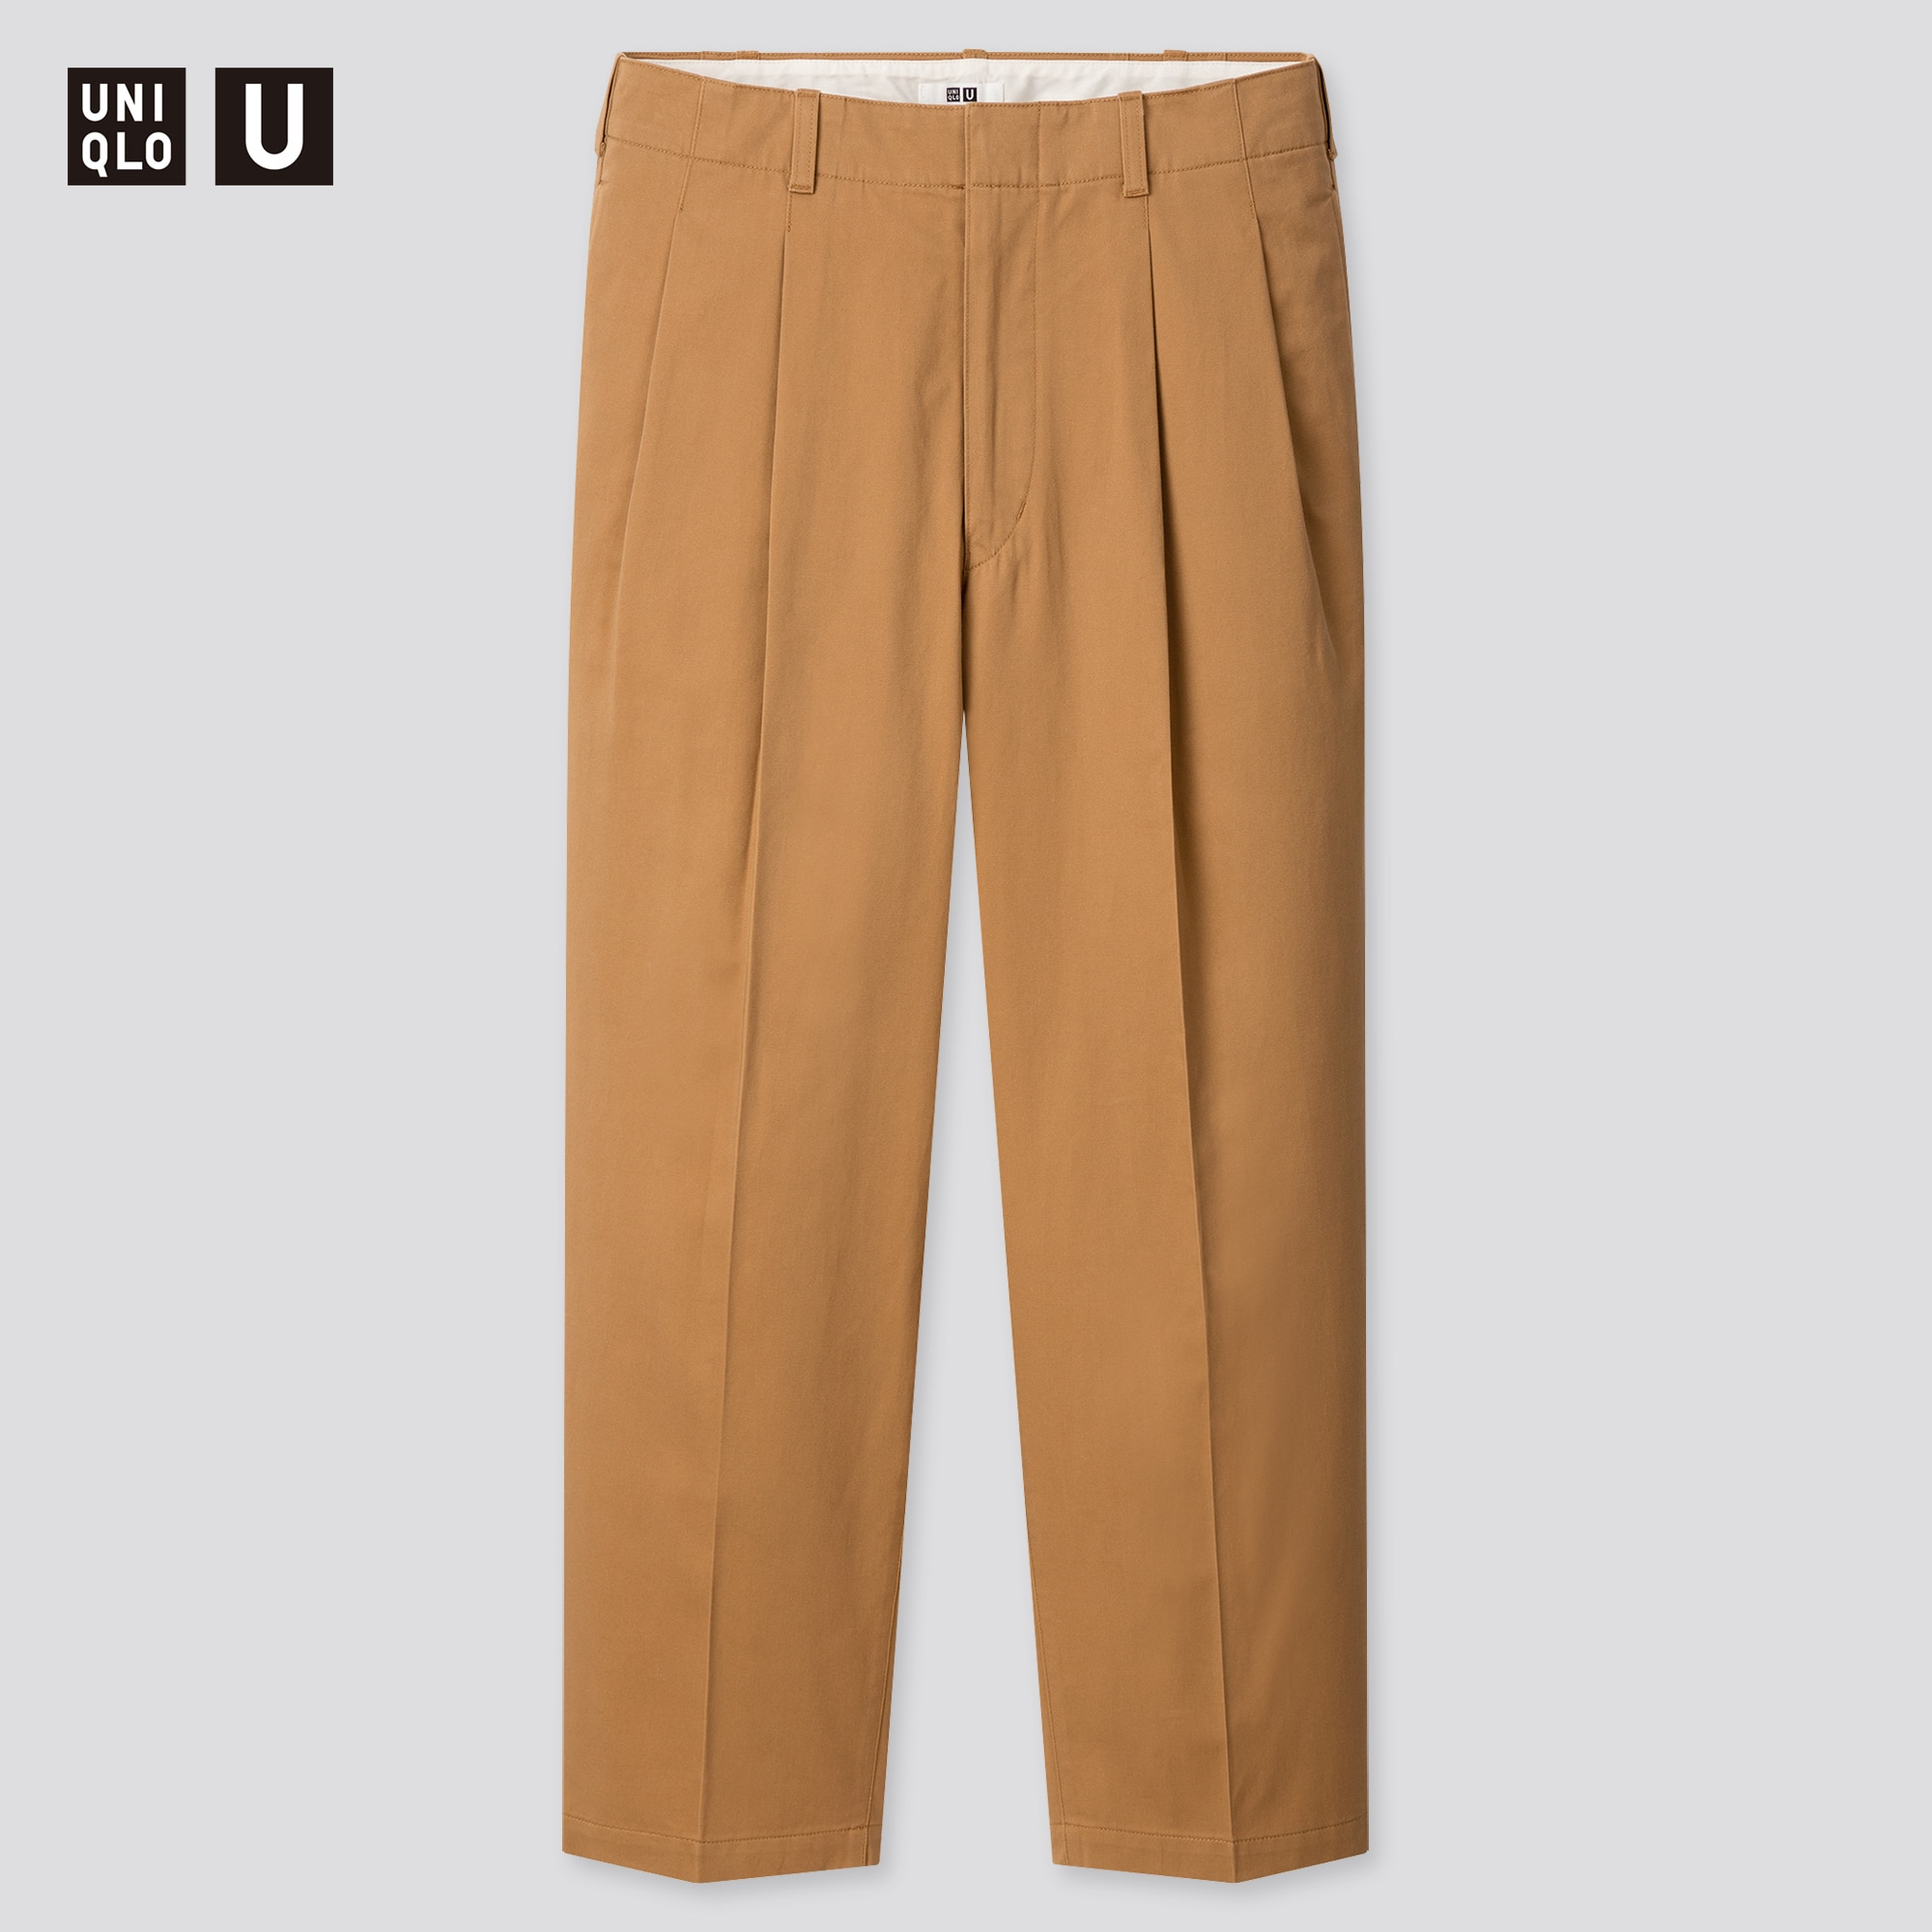 MEN U WIDE-FIT PLEATED TAPERED PANTS